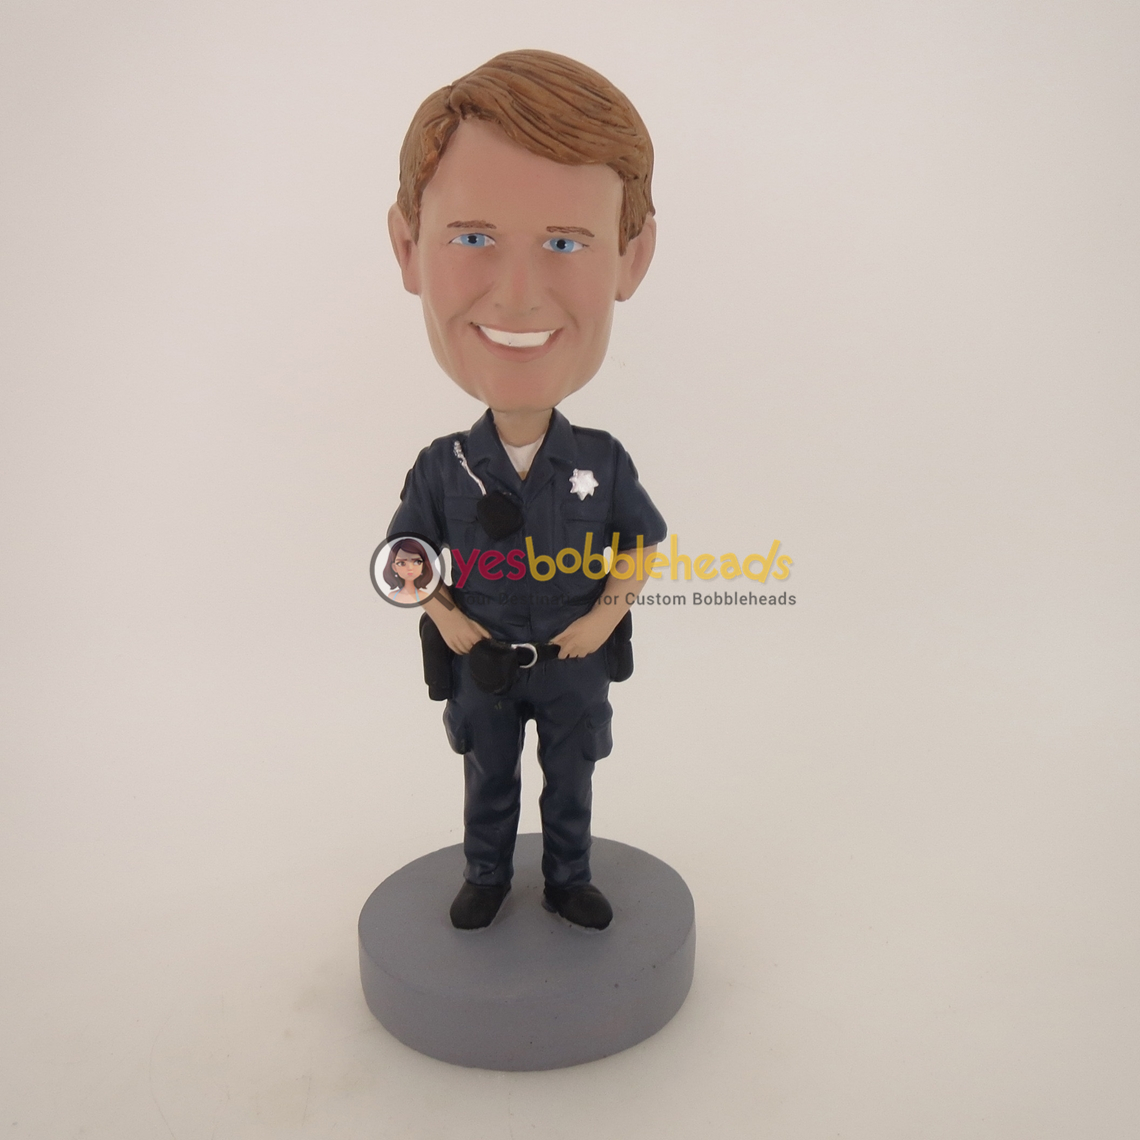 Picture of Custom Bobblehead Doll: Police Officer With Walkie Talkie